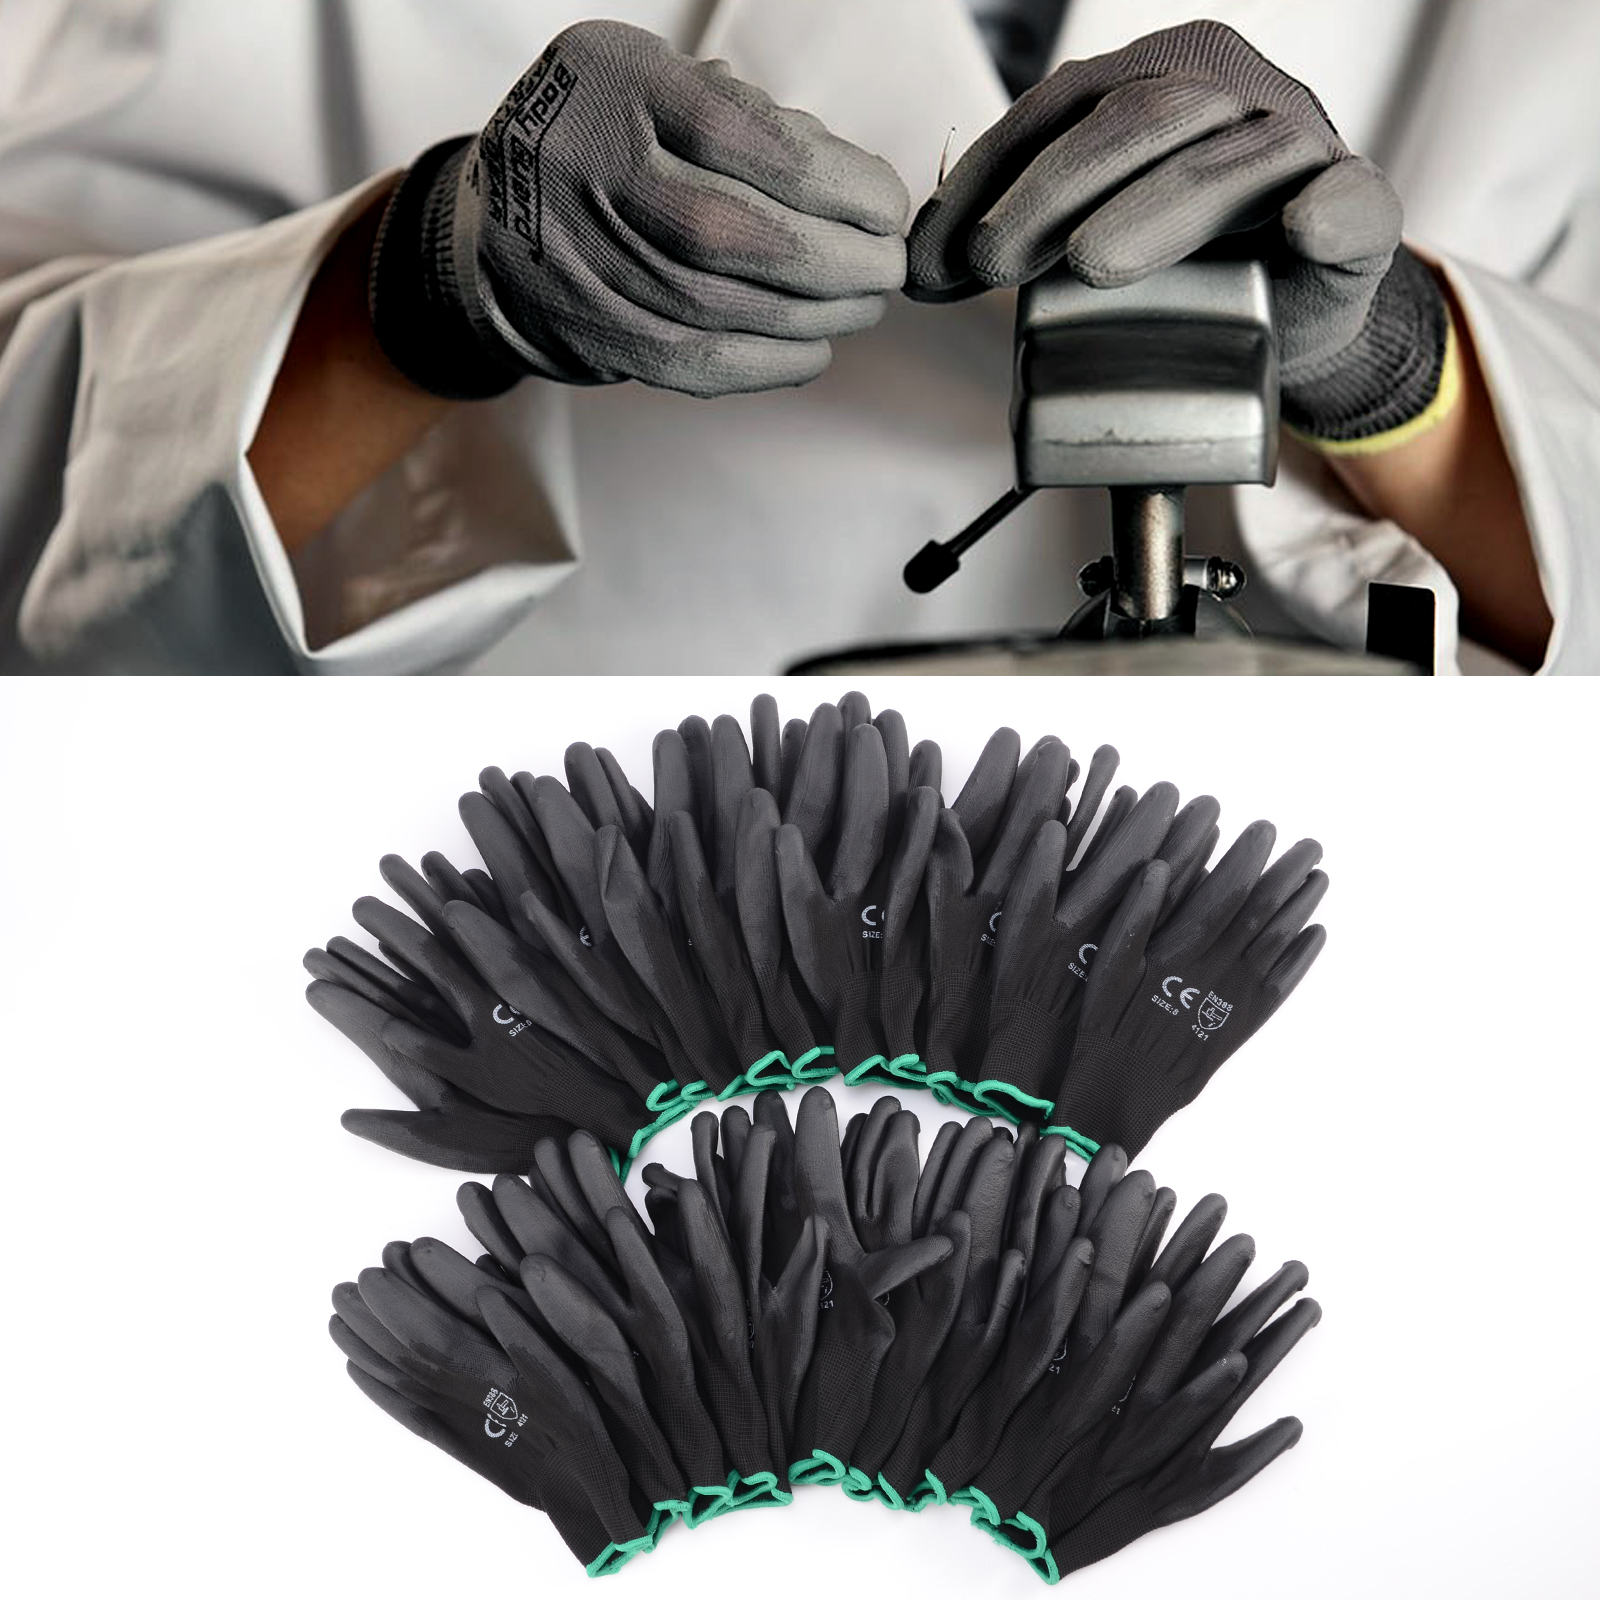 Ebay uk leather work gloves - 12 Pairs Black Nylon Pu Safety Work Gloves Builders Grip Palm Coating Gloves